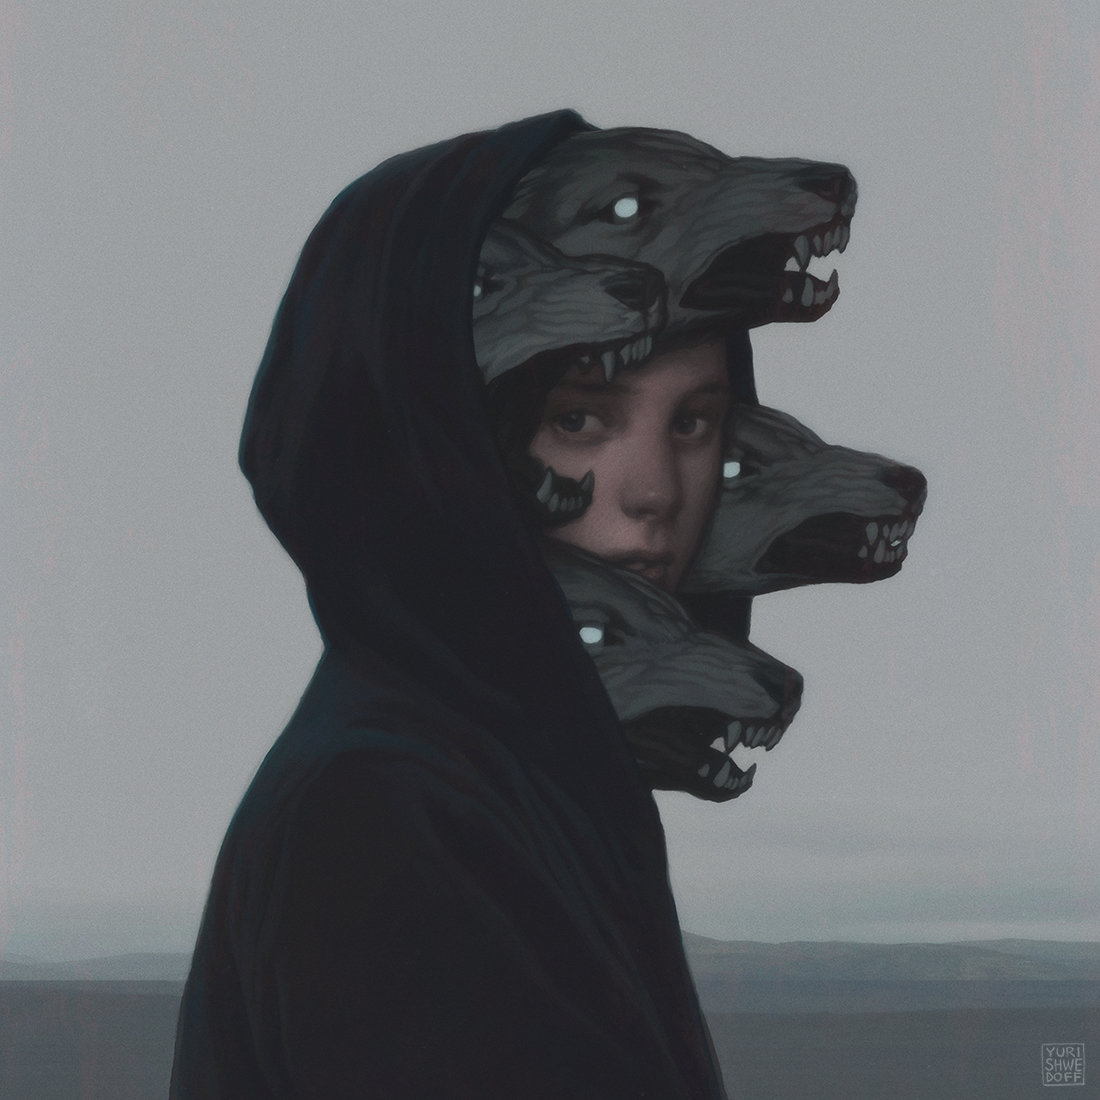 [Reflexion] Les oeuvres qui vous inspirent - Page 2 Yuri-shwedoff-wolf-pack-internet